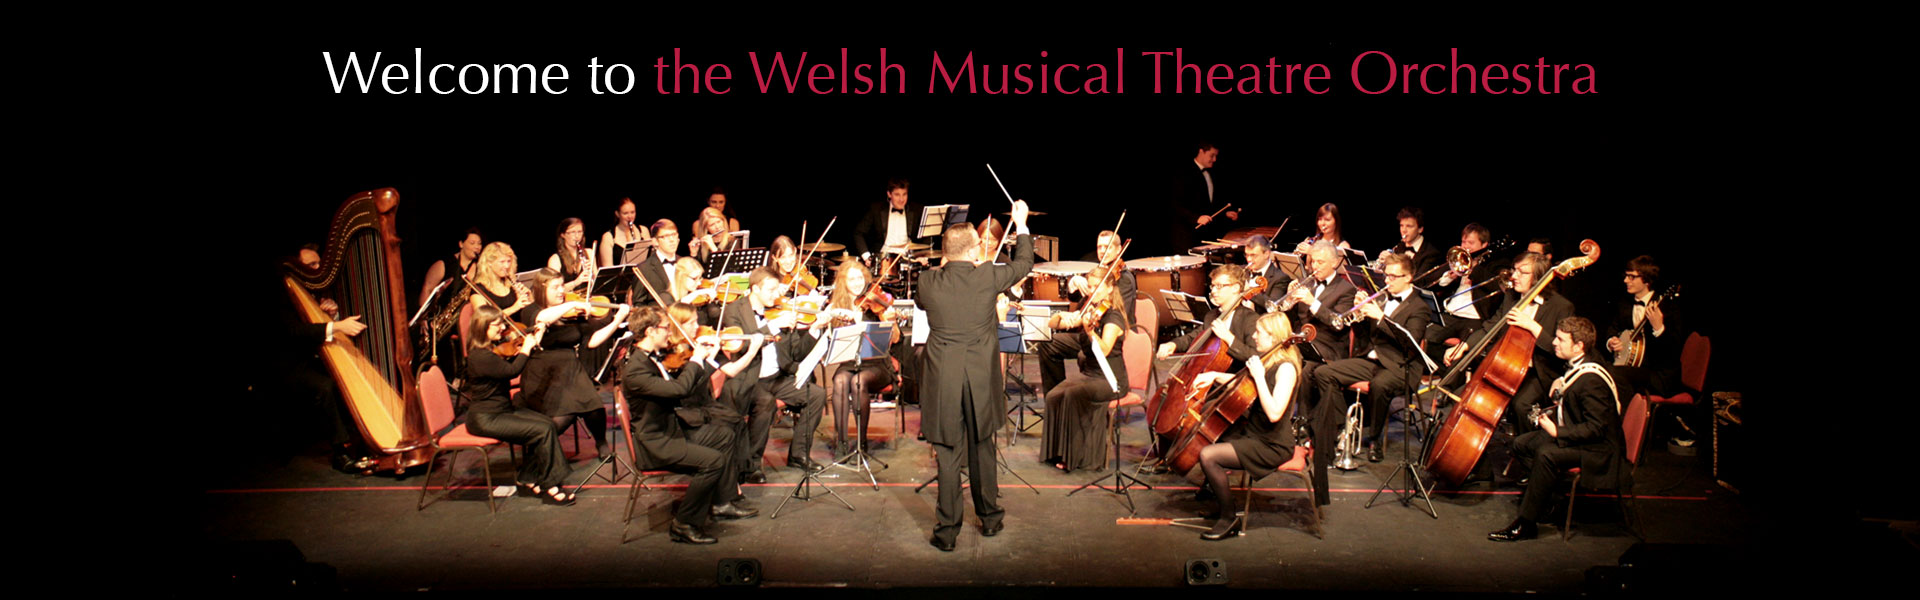 Welsh Musical Theatre Orchestra